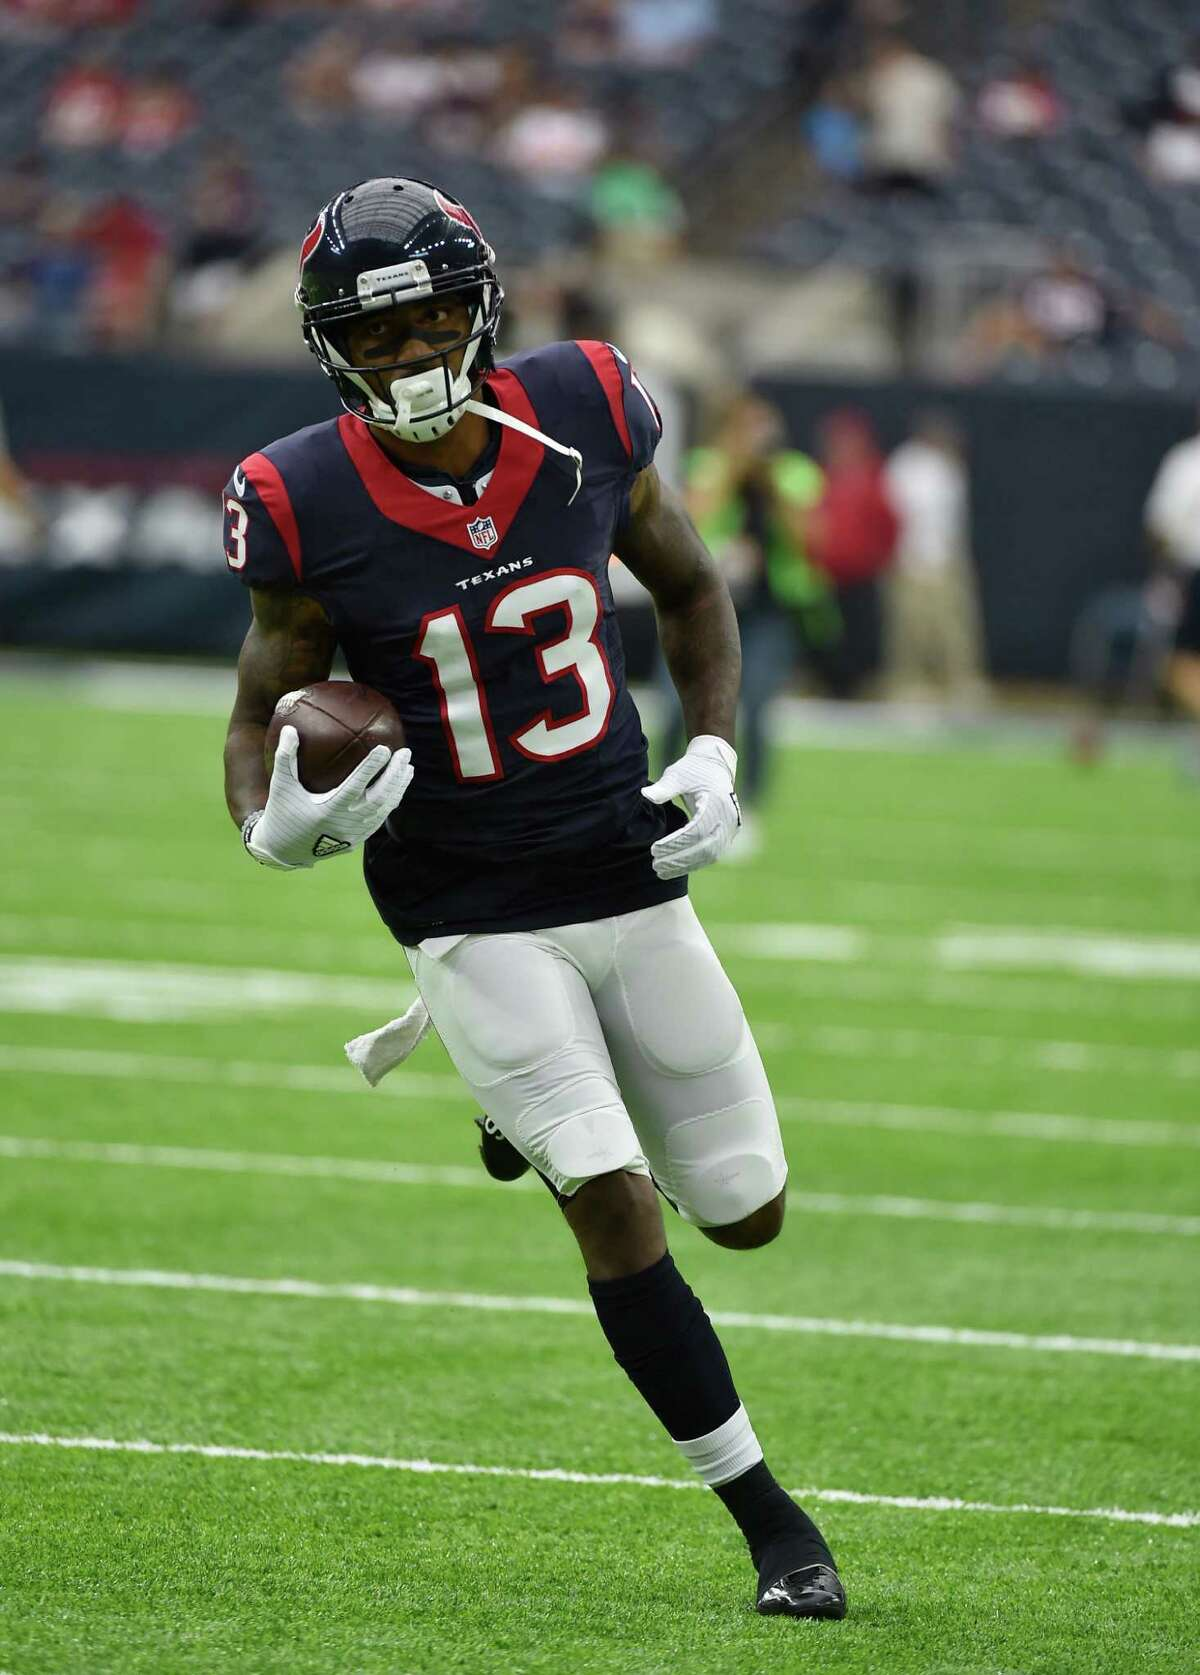 Houston Texans wide receiver Braxton Miller (13) prepares for an NFL preseason football game against the Arizona Cardinals, Sunday, Aug. 28, 2016, in Houston. (AP Photo/Eric Christian Smith)